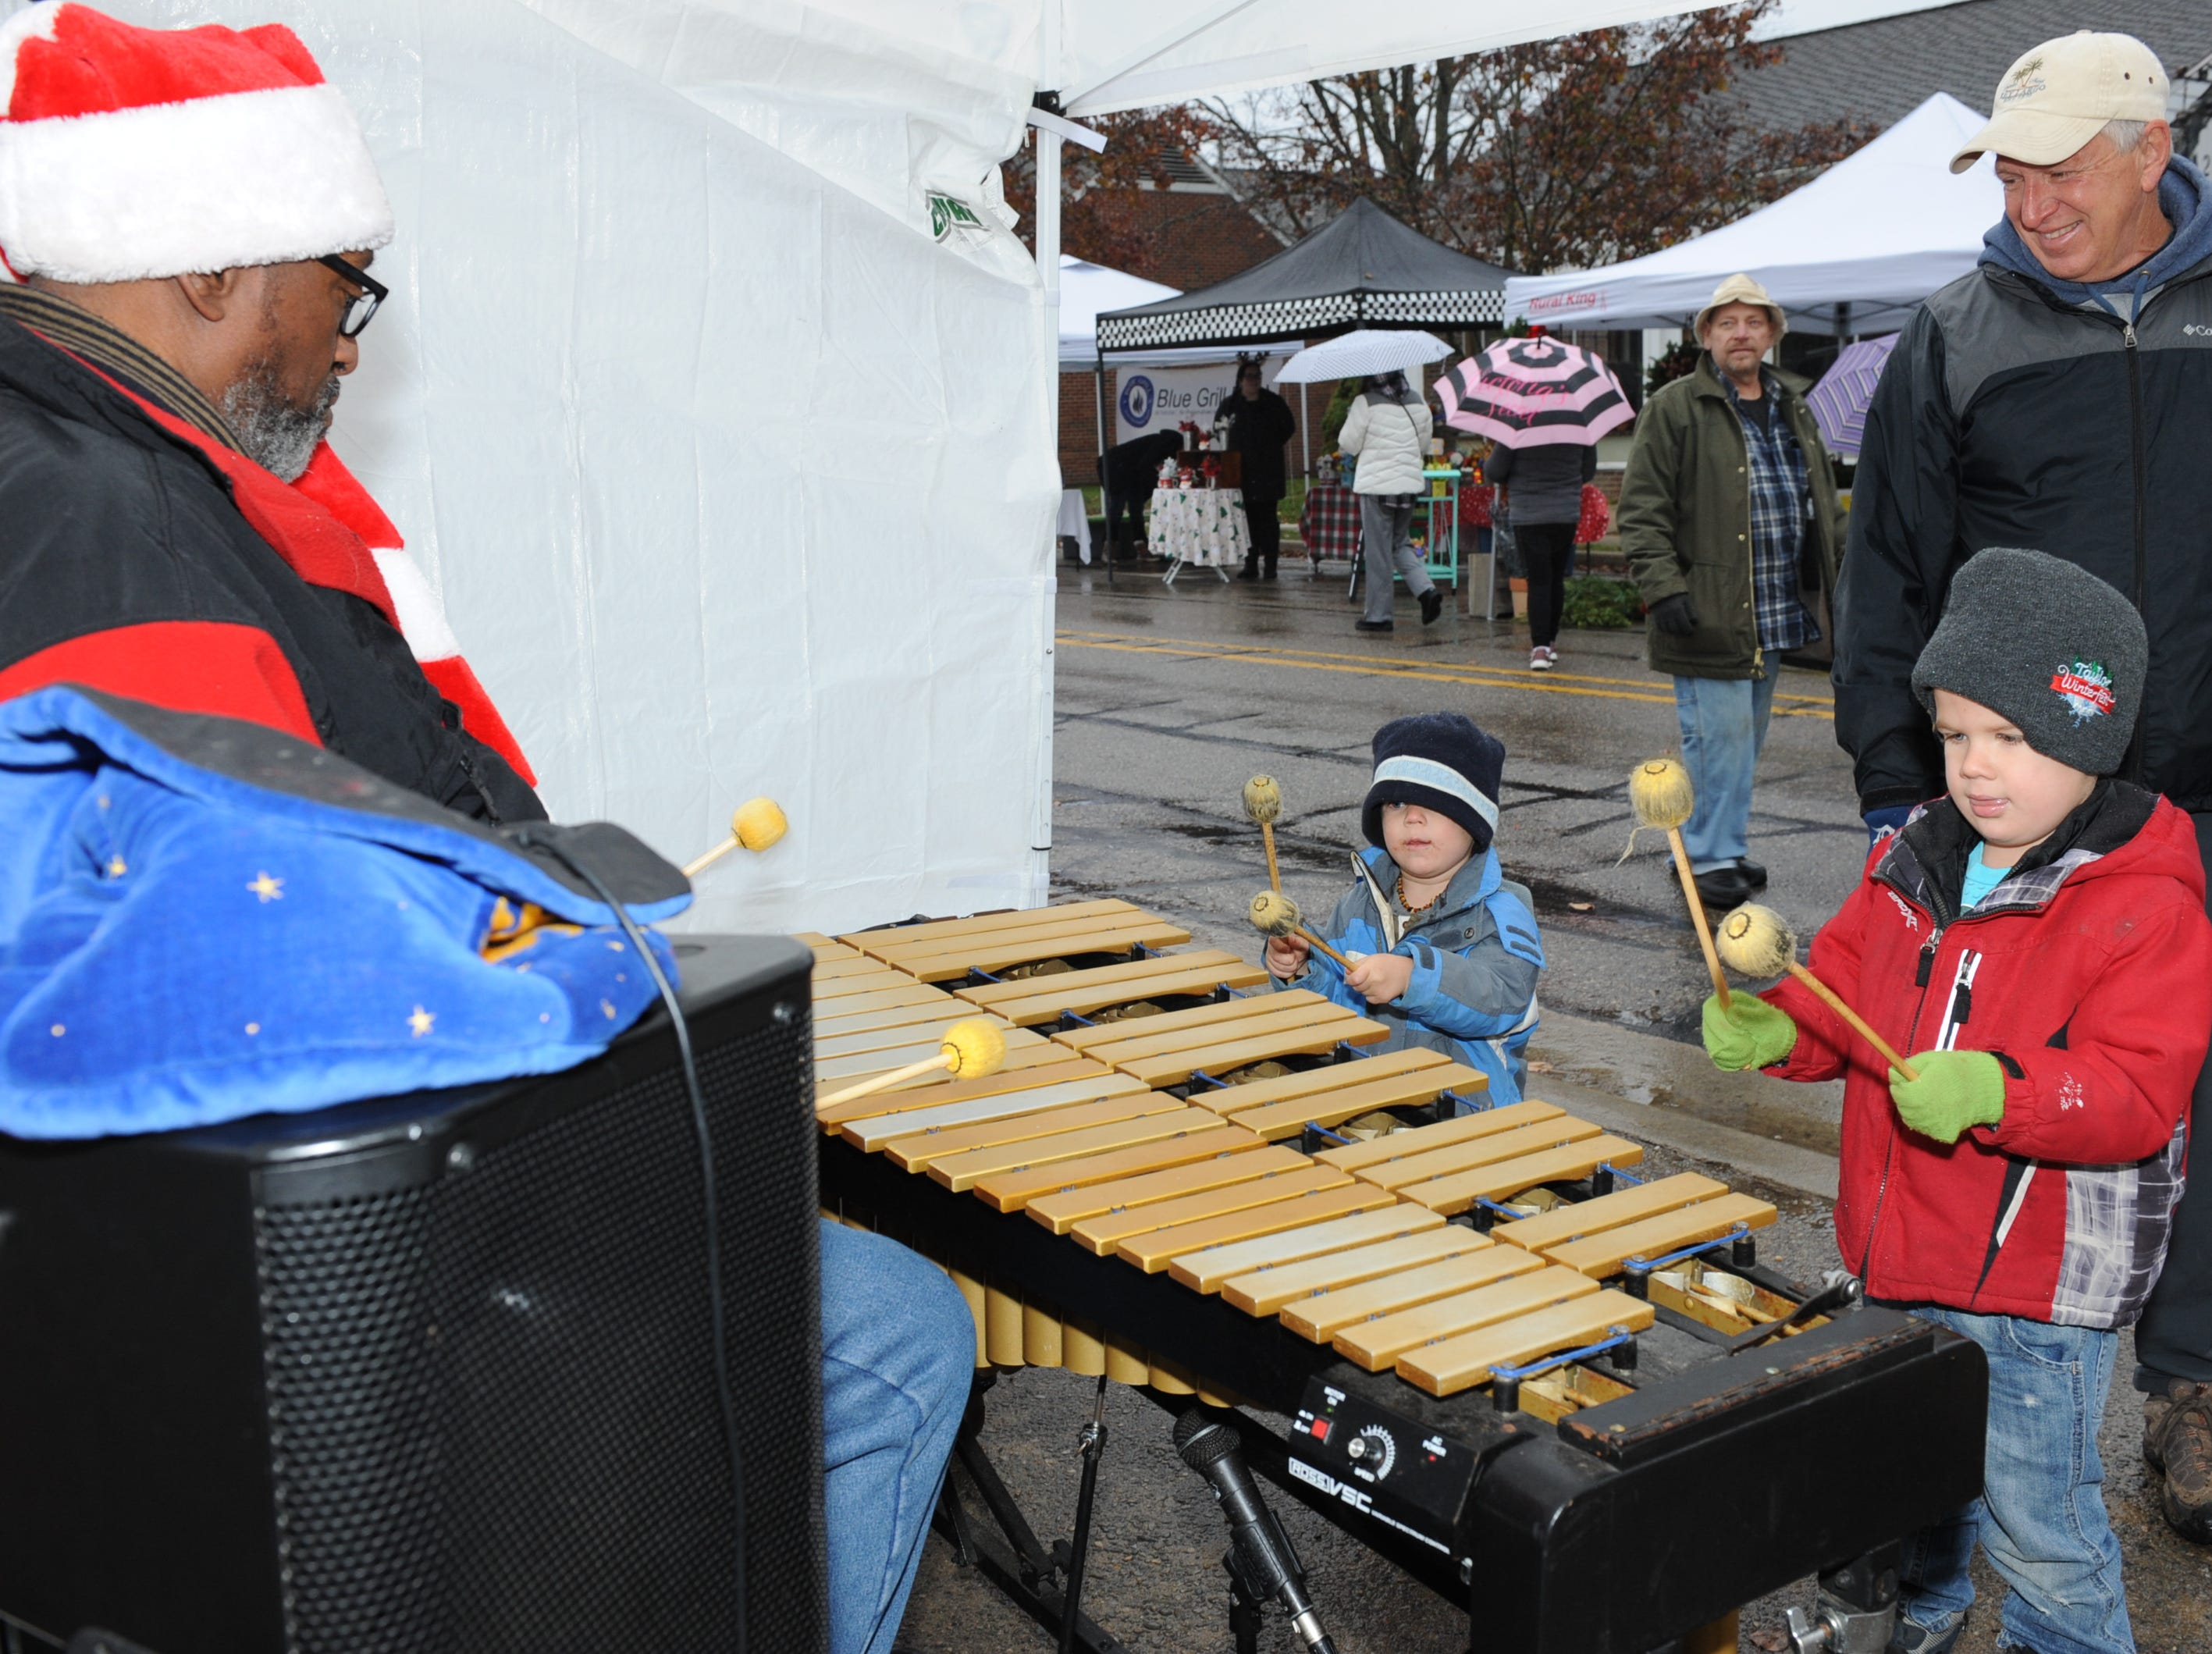 Brothers Isaac and Lucas Ratliff show off their musical skills to John Davis before the Milford Christmas Parade.